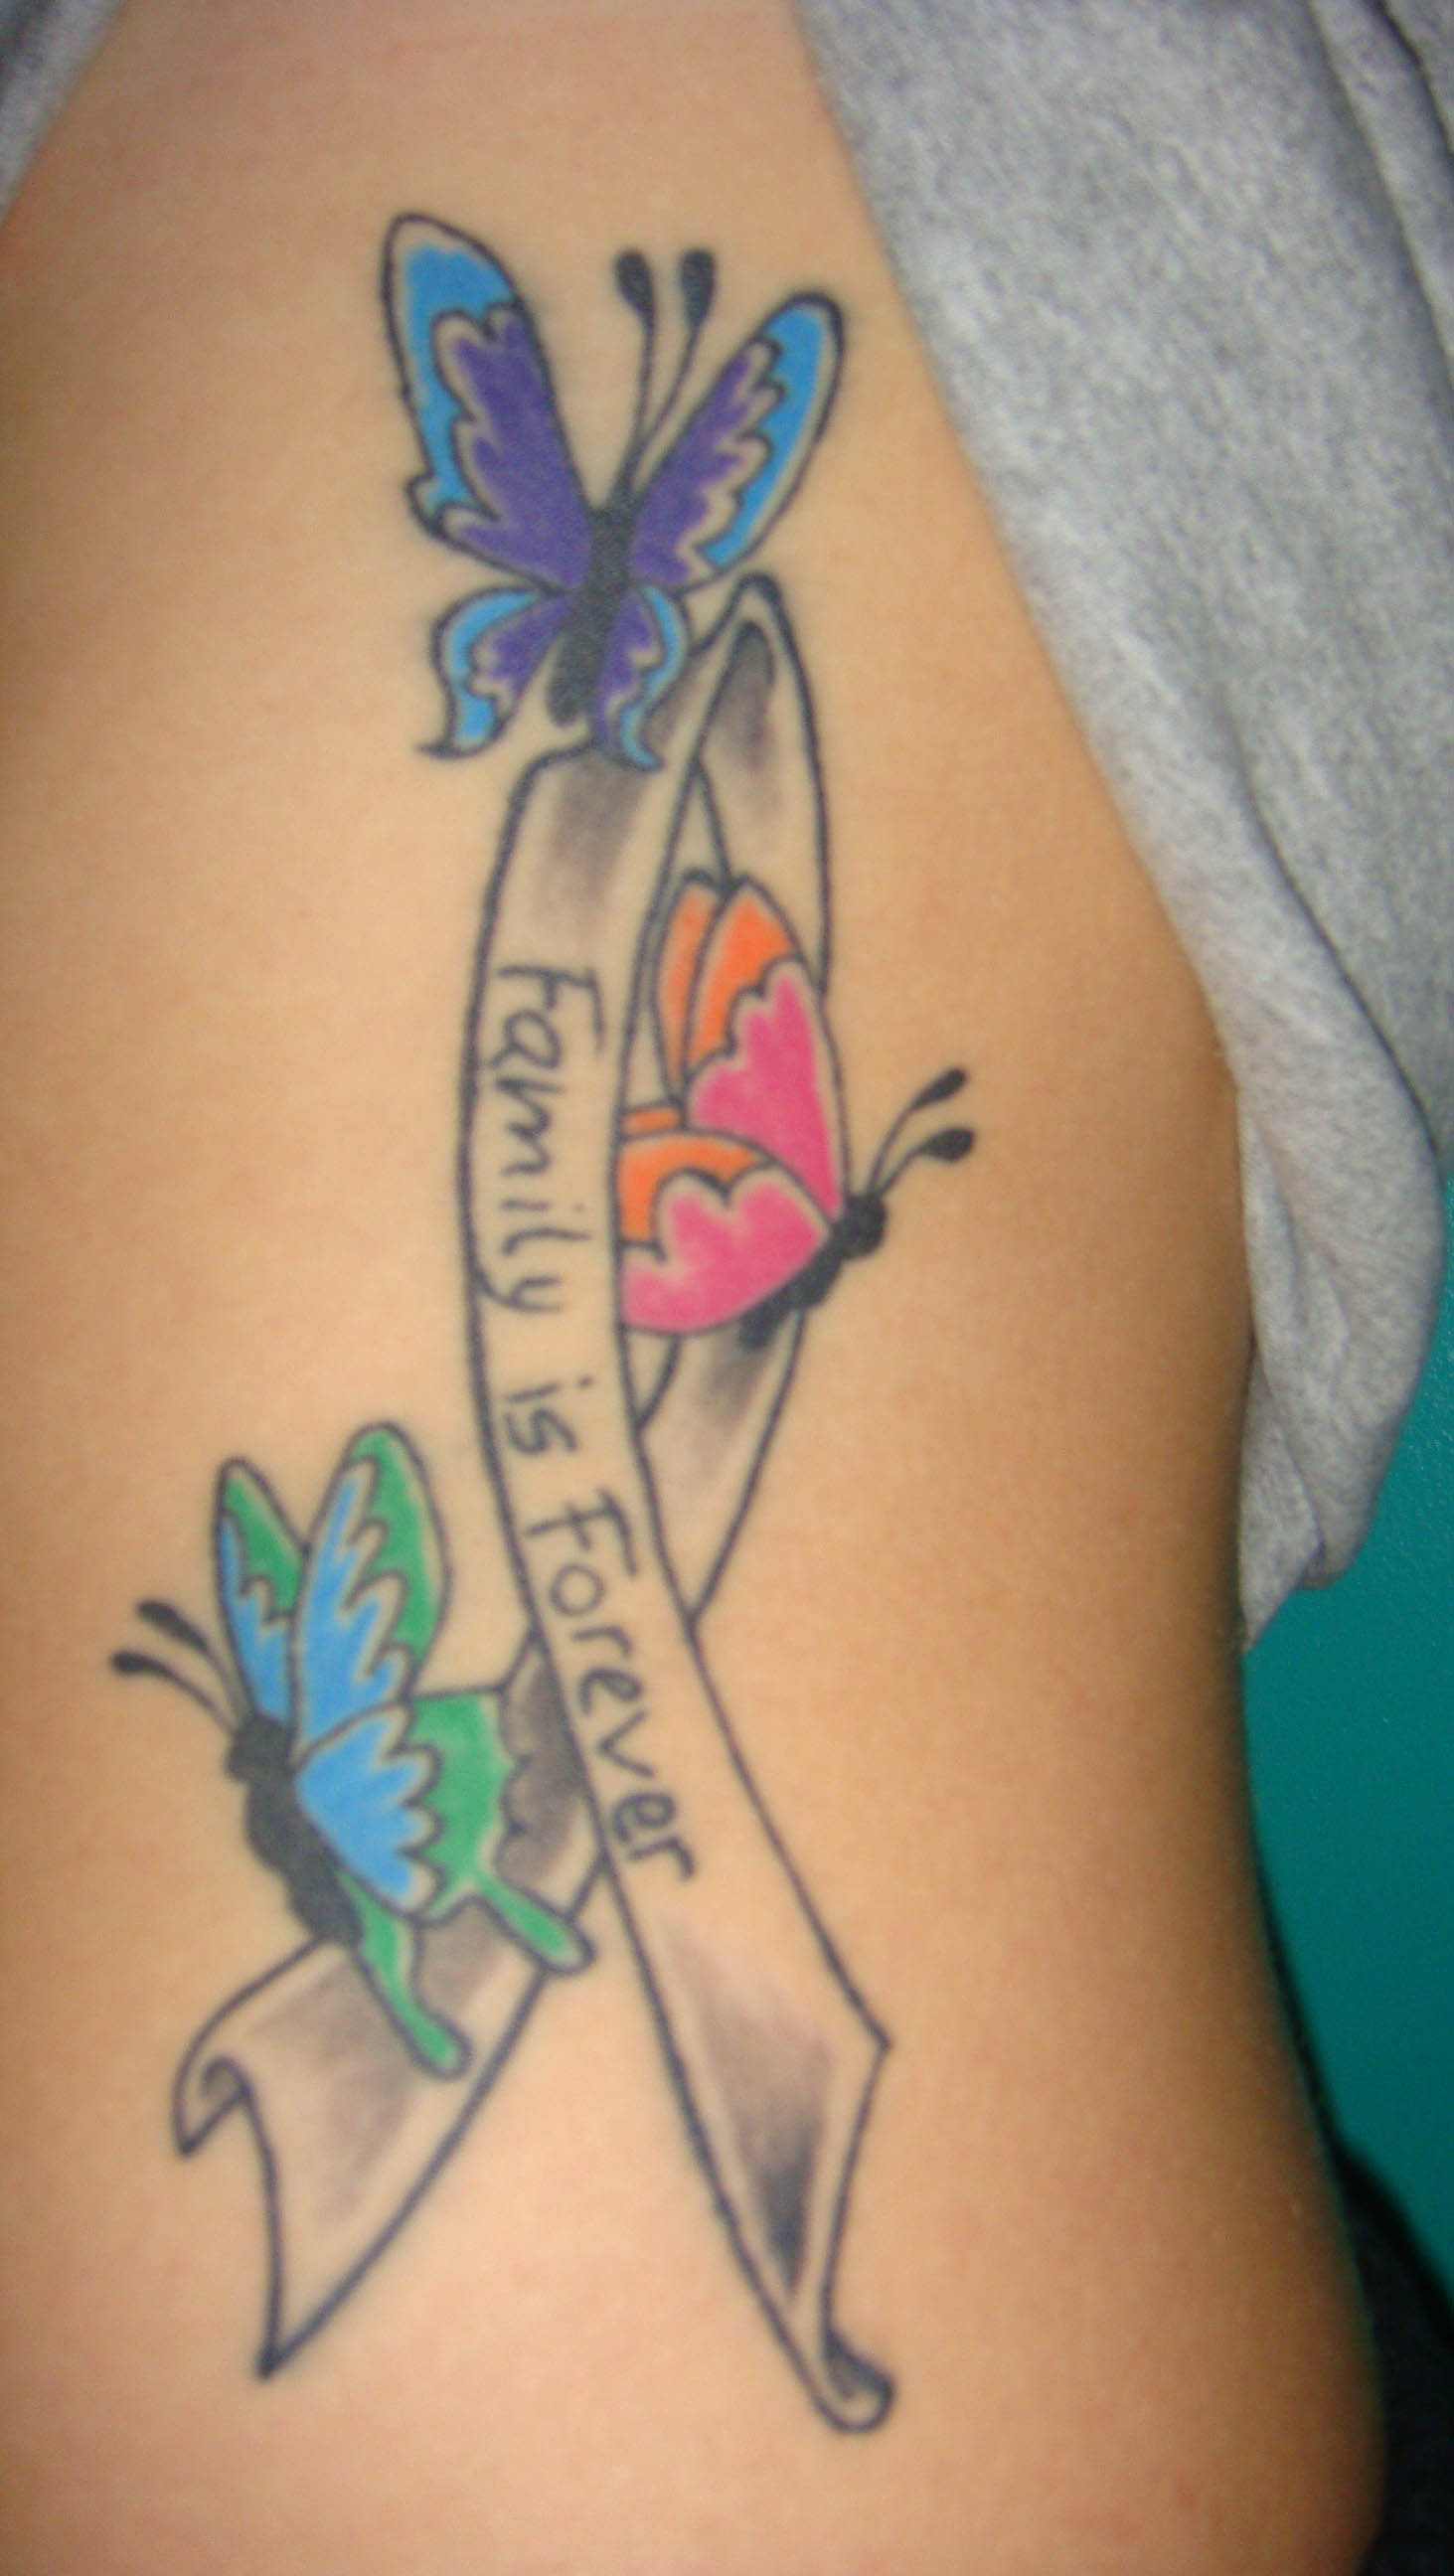 Cancer Tattoos Designs Ideas And Meaning Tattoos For You Ideas And Designs